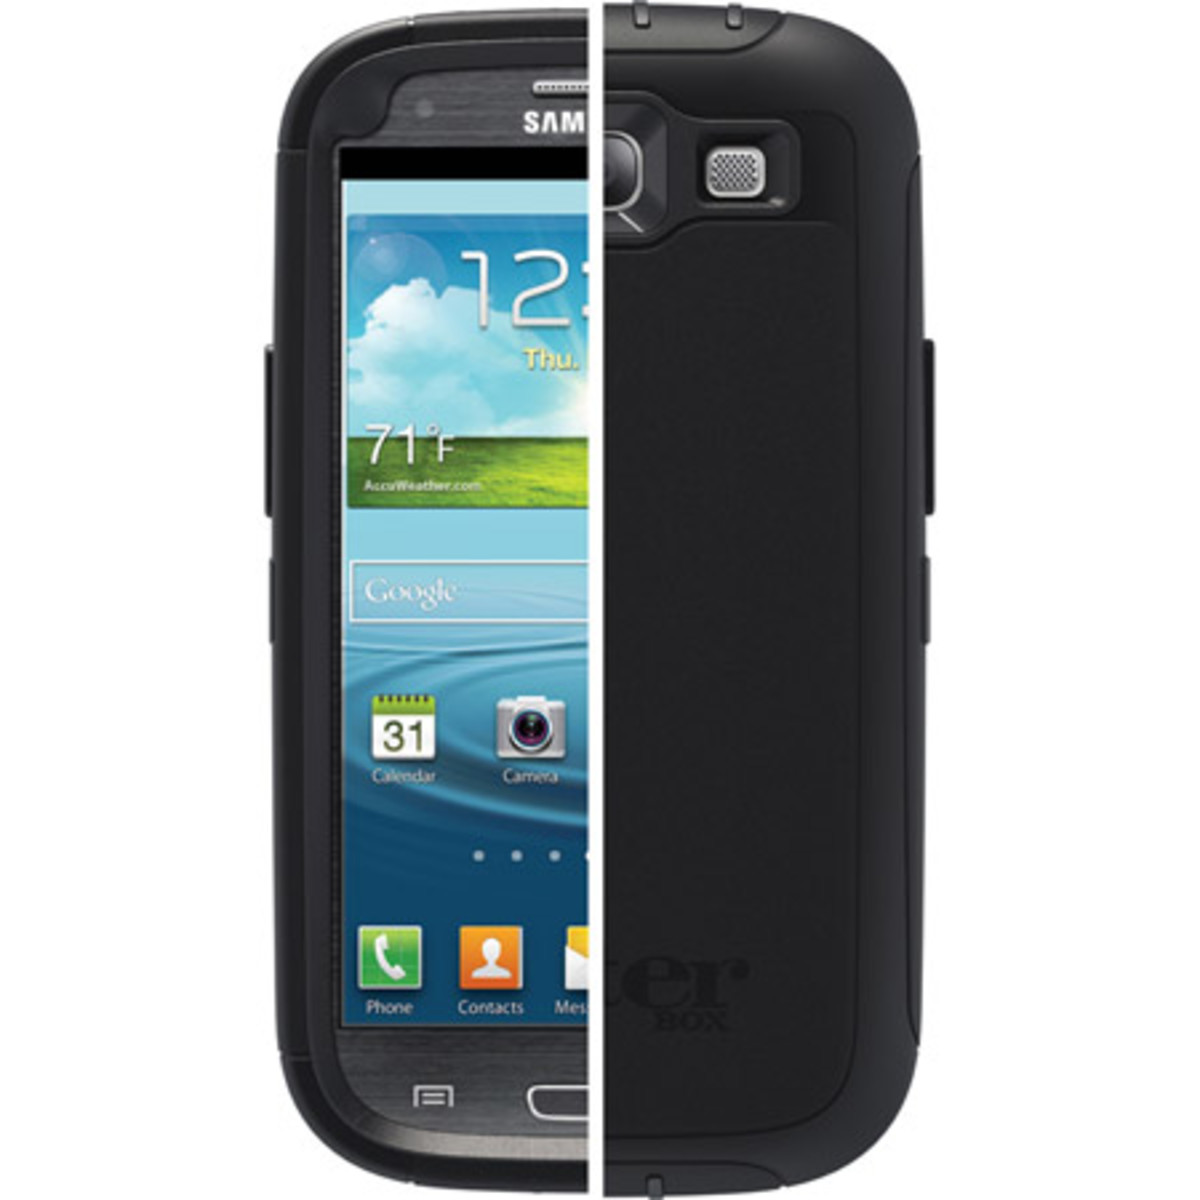 The OtterBox Defender offers two layers of protection for your Samsung Galaxy S3.